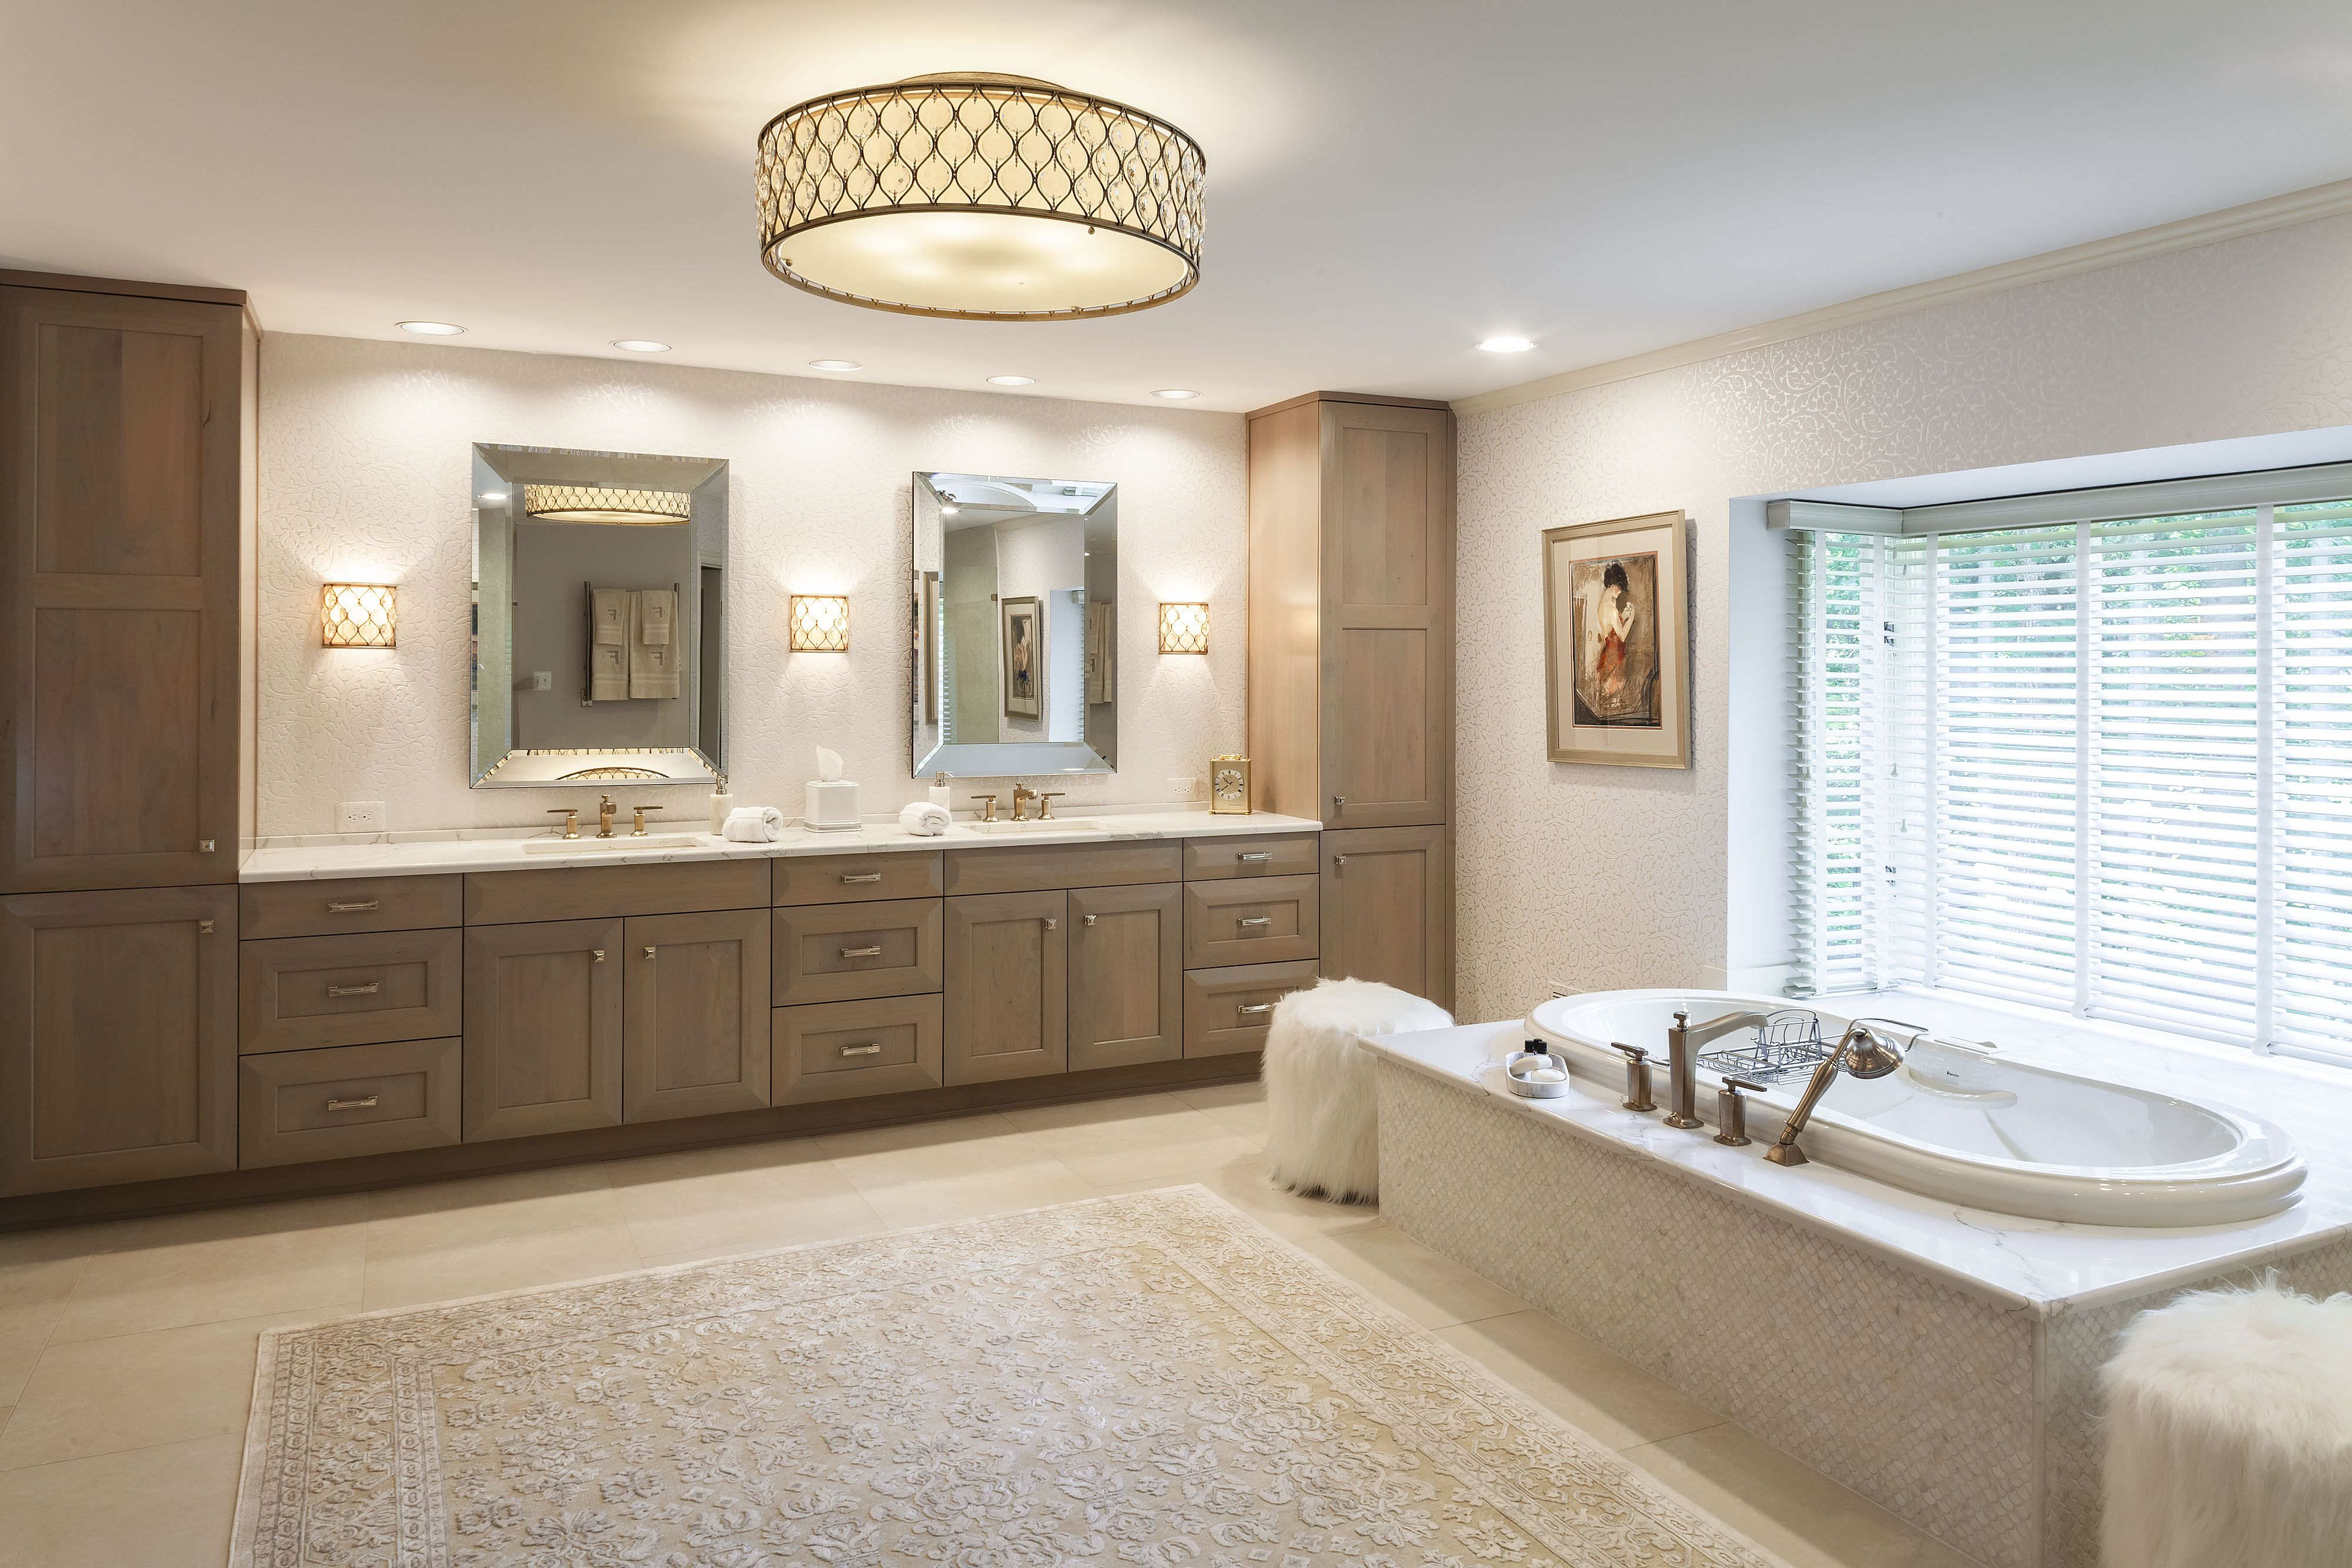 Master Bathroom Remodel In Frederick Md By Talon Construction With Large Vanity Mirror Bathrooms Remodel Bathroom Remodel Master Remodel [ 3000 x 4000 Pixel ]